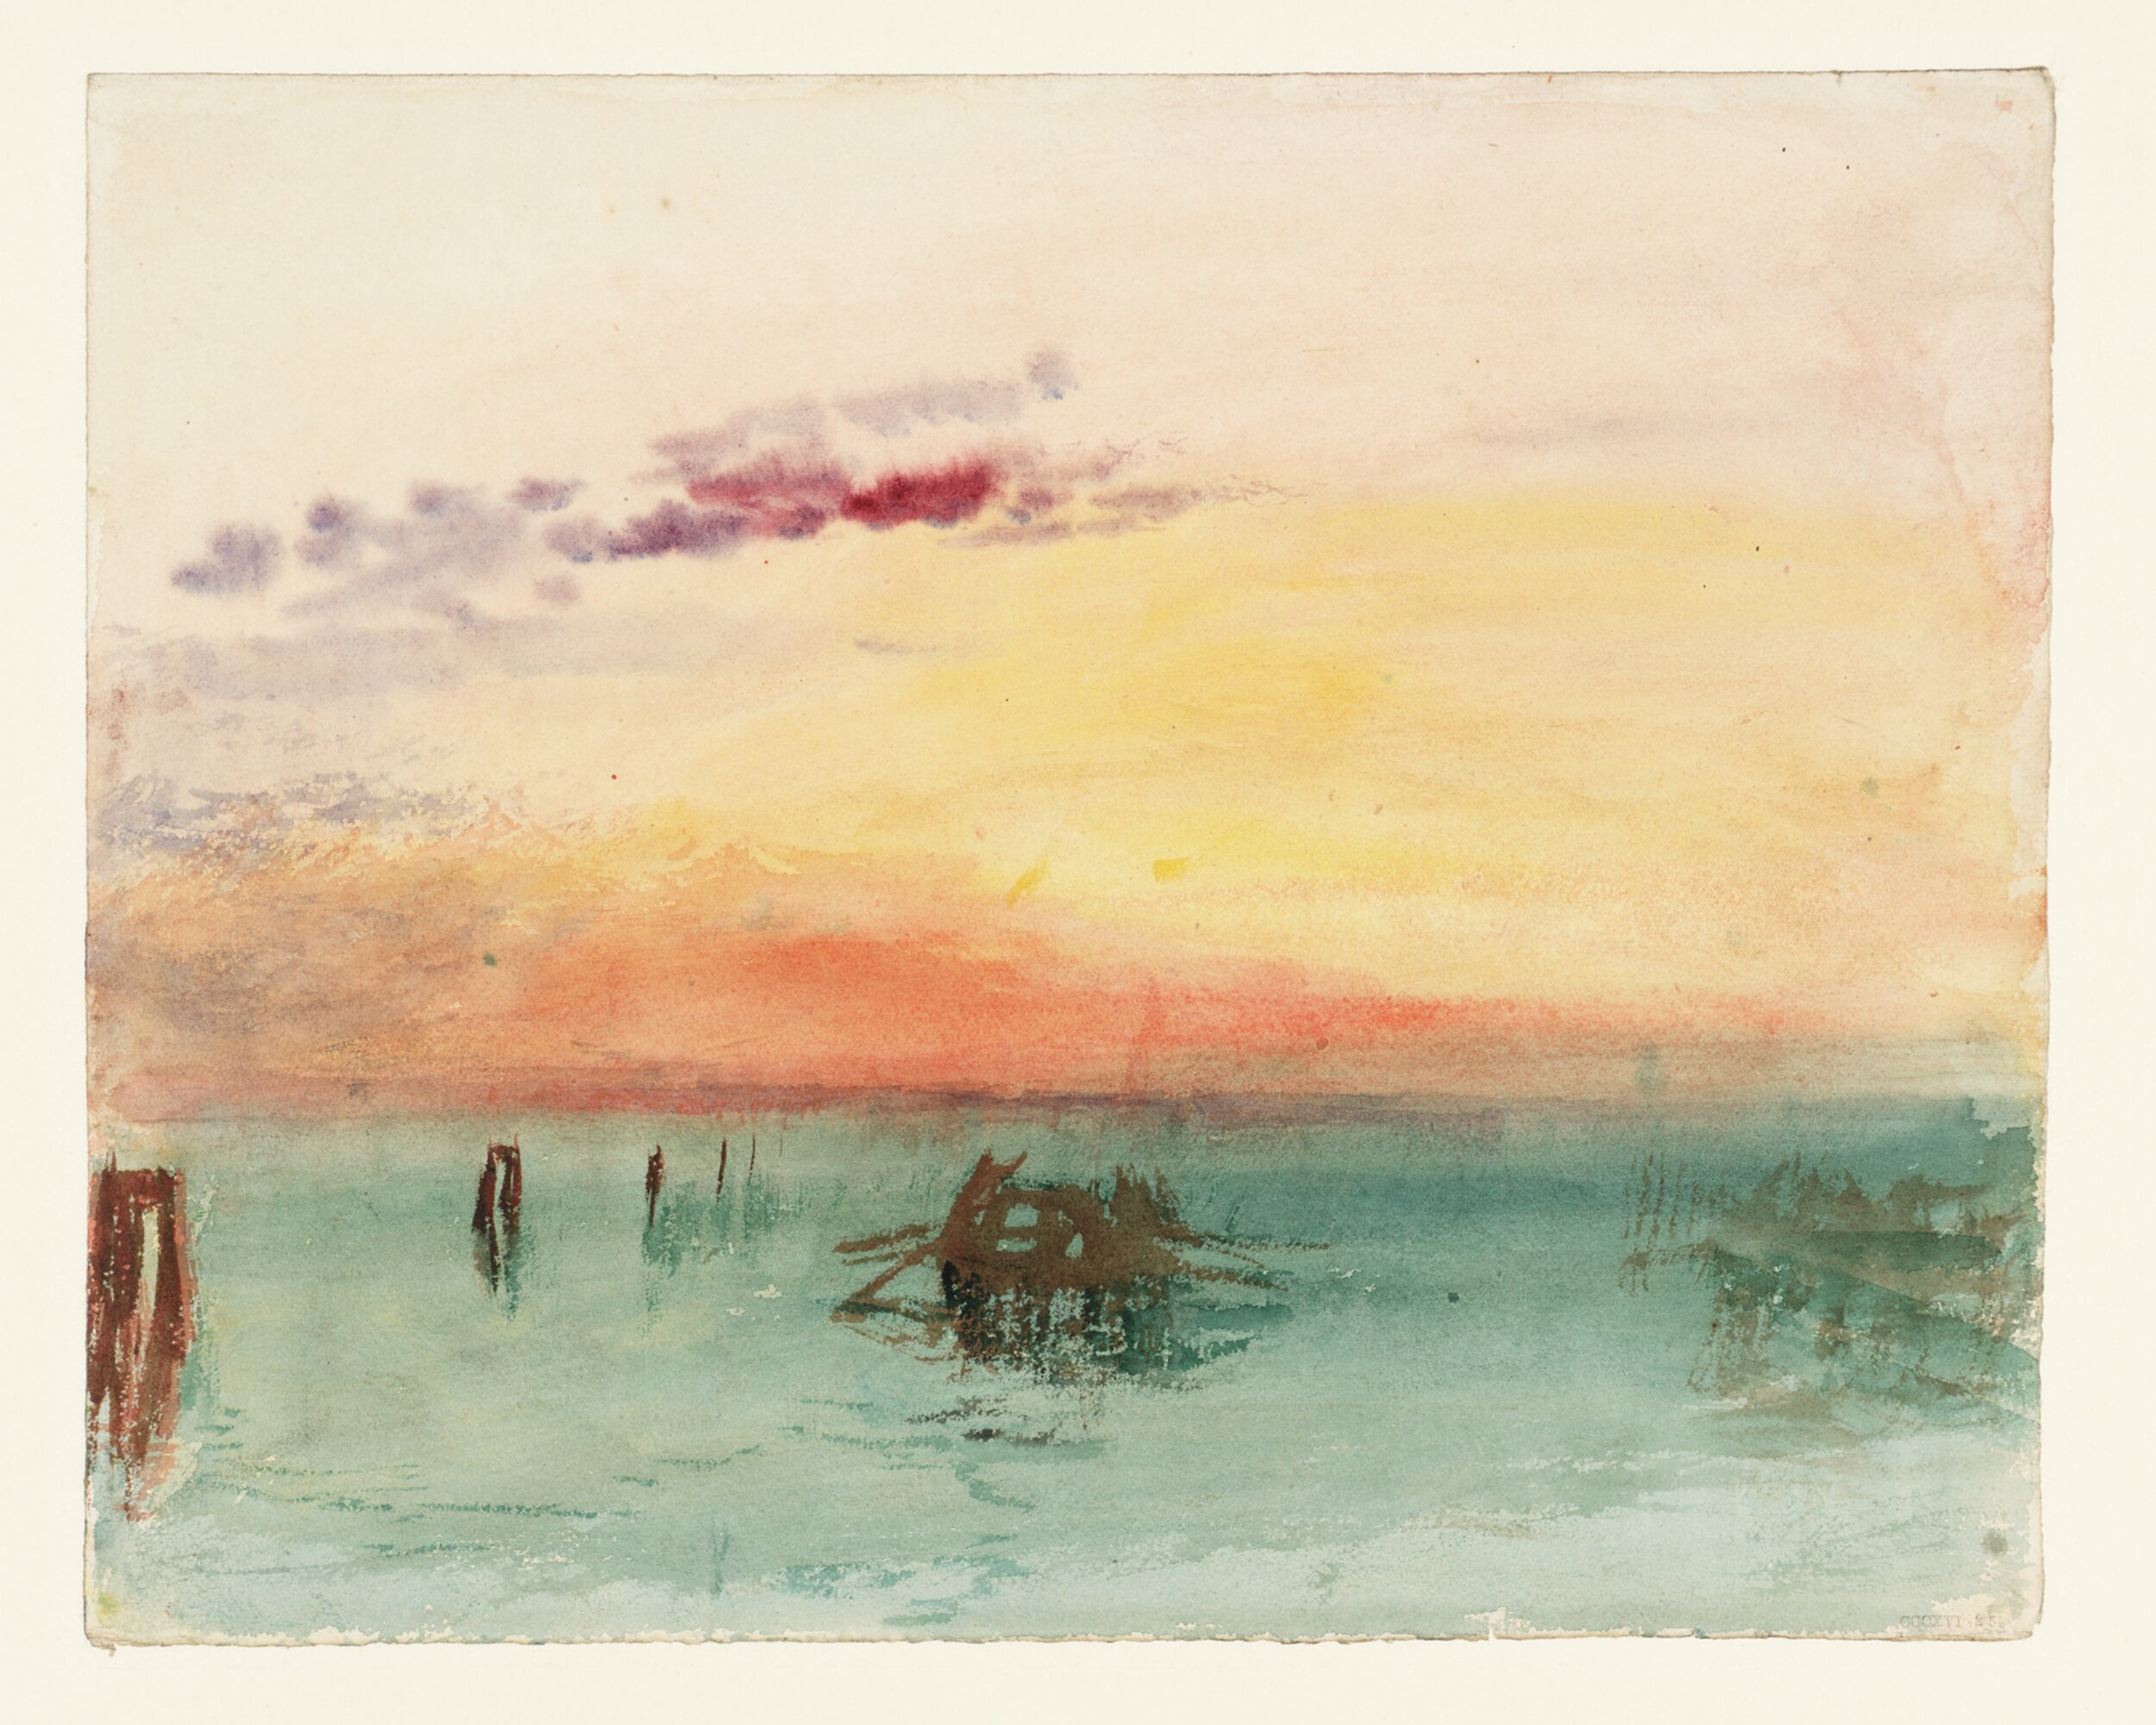 J. M. W. Turner,  Venice: Looking across the Lagoon at Sunset , 1840, Watercolor on paper, Tate.